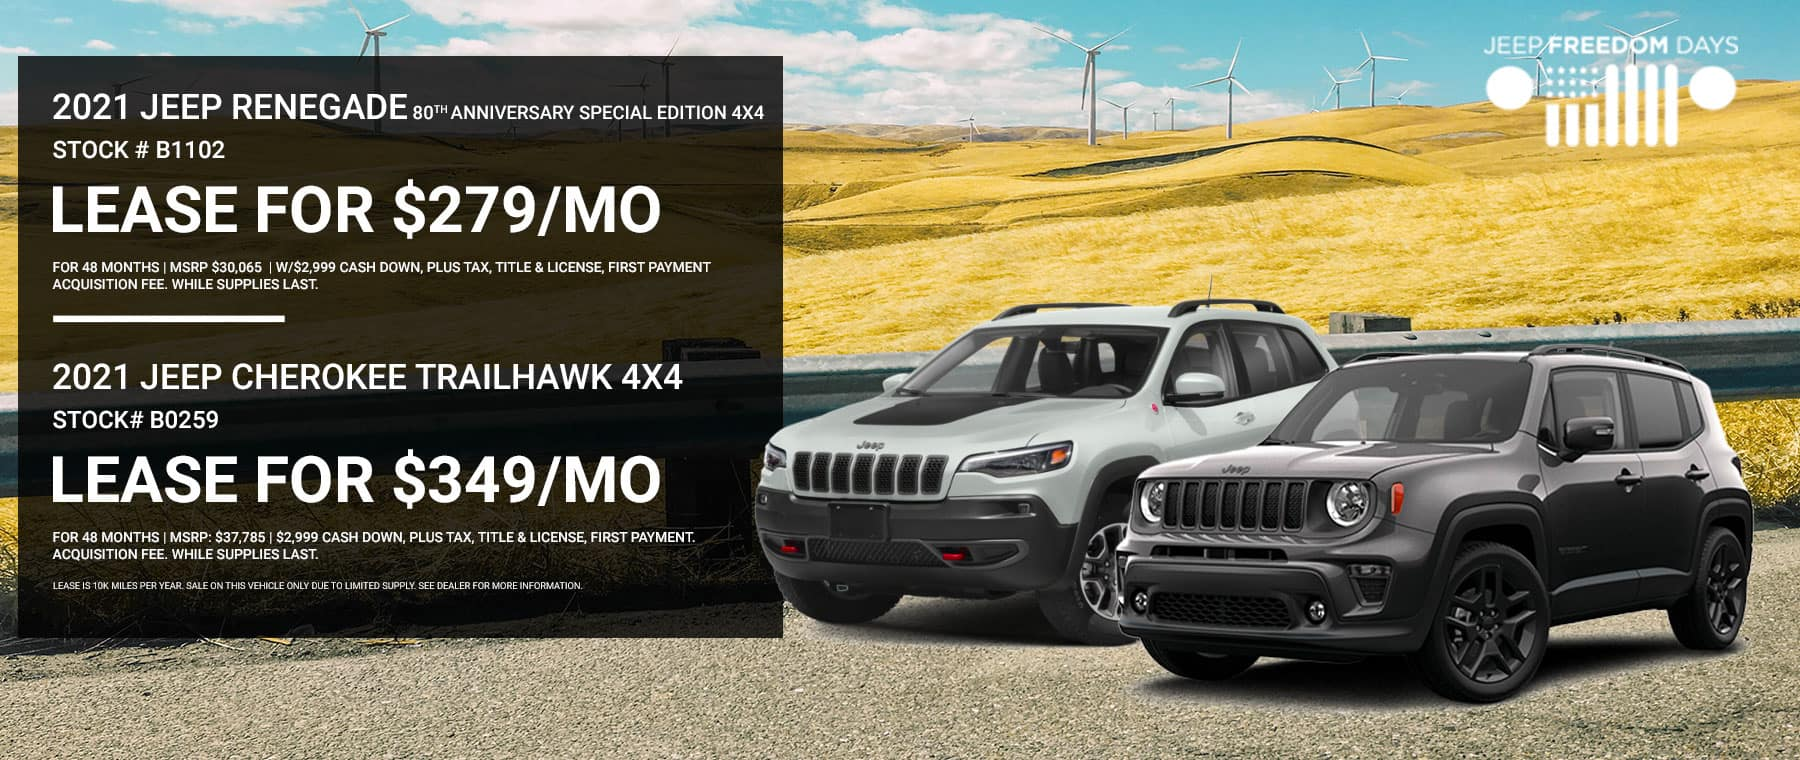 2021 Jeep Renegade 80th Anniversary Special Edition 4x4 Stock # B1102 | 2021 Jeep Cherokee Trailhawk 4x4 Stock# B0259